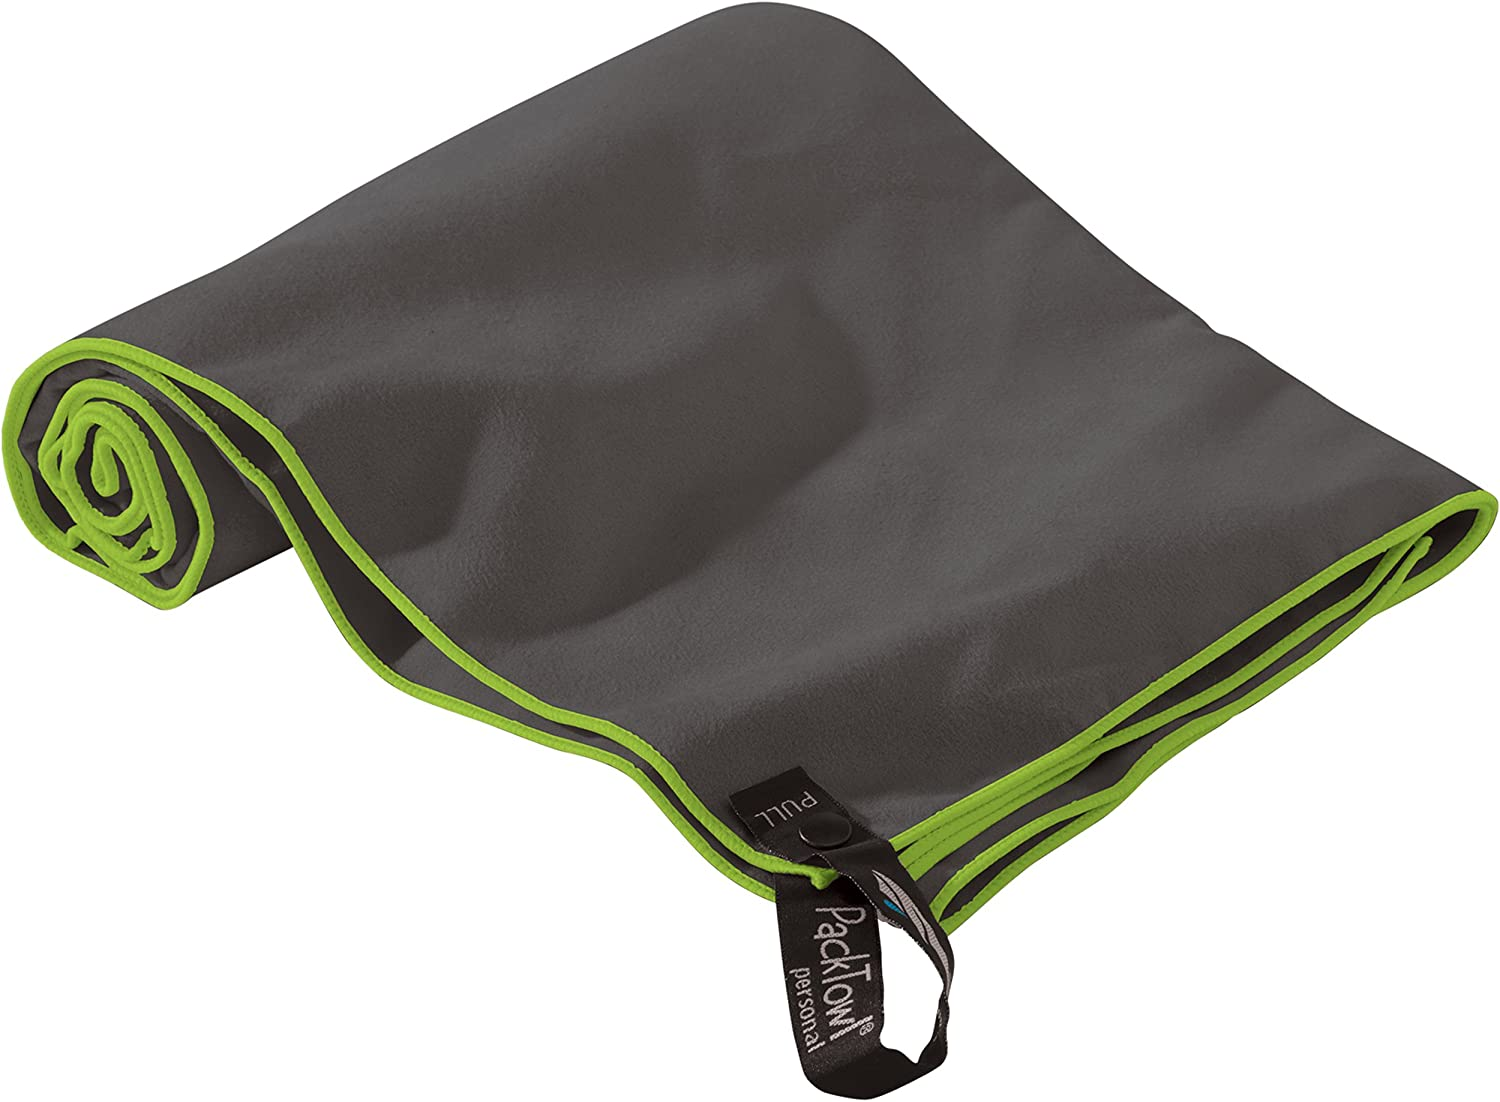 PackTowl Personal Quick Dry Microfiber Towel for Camping